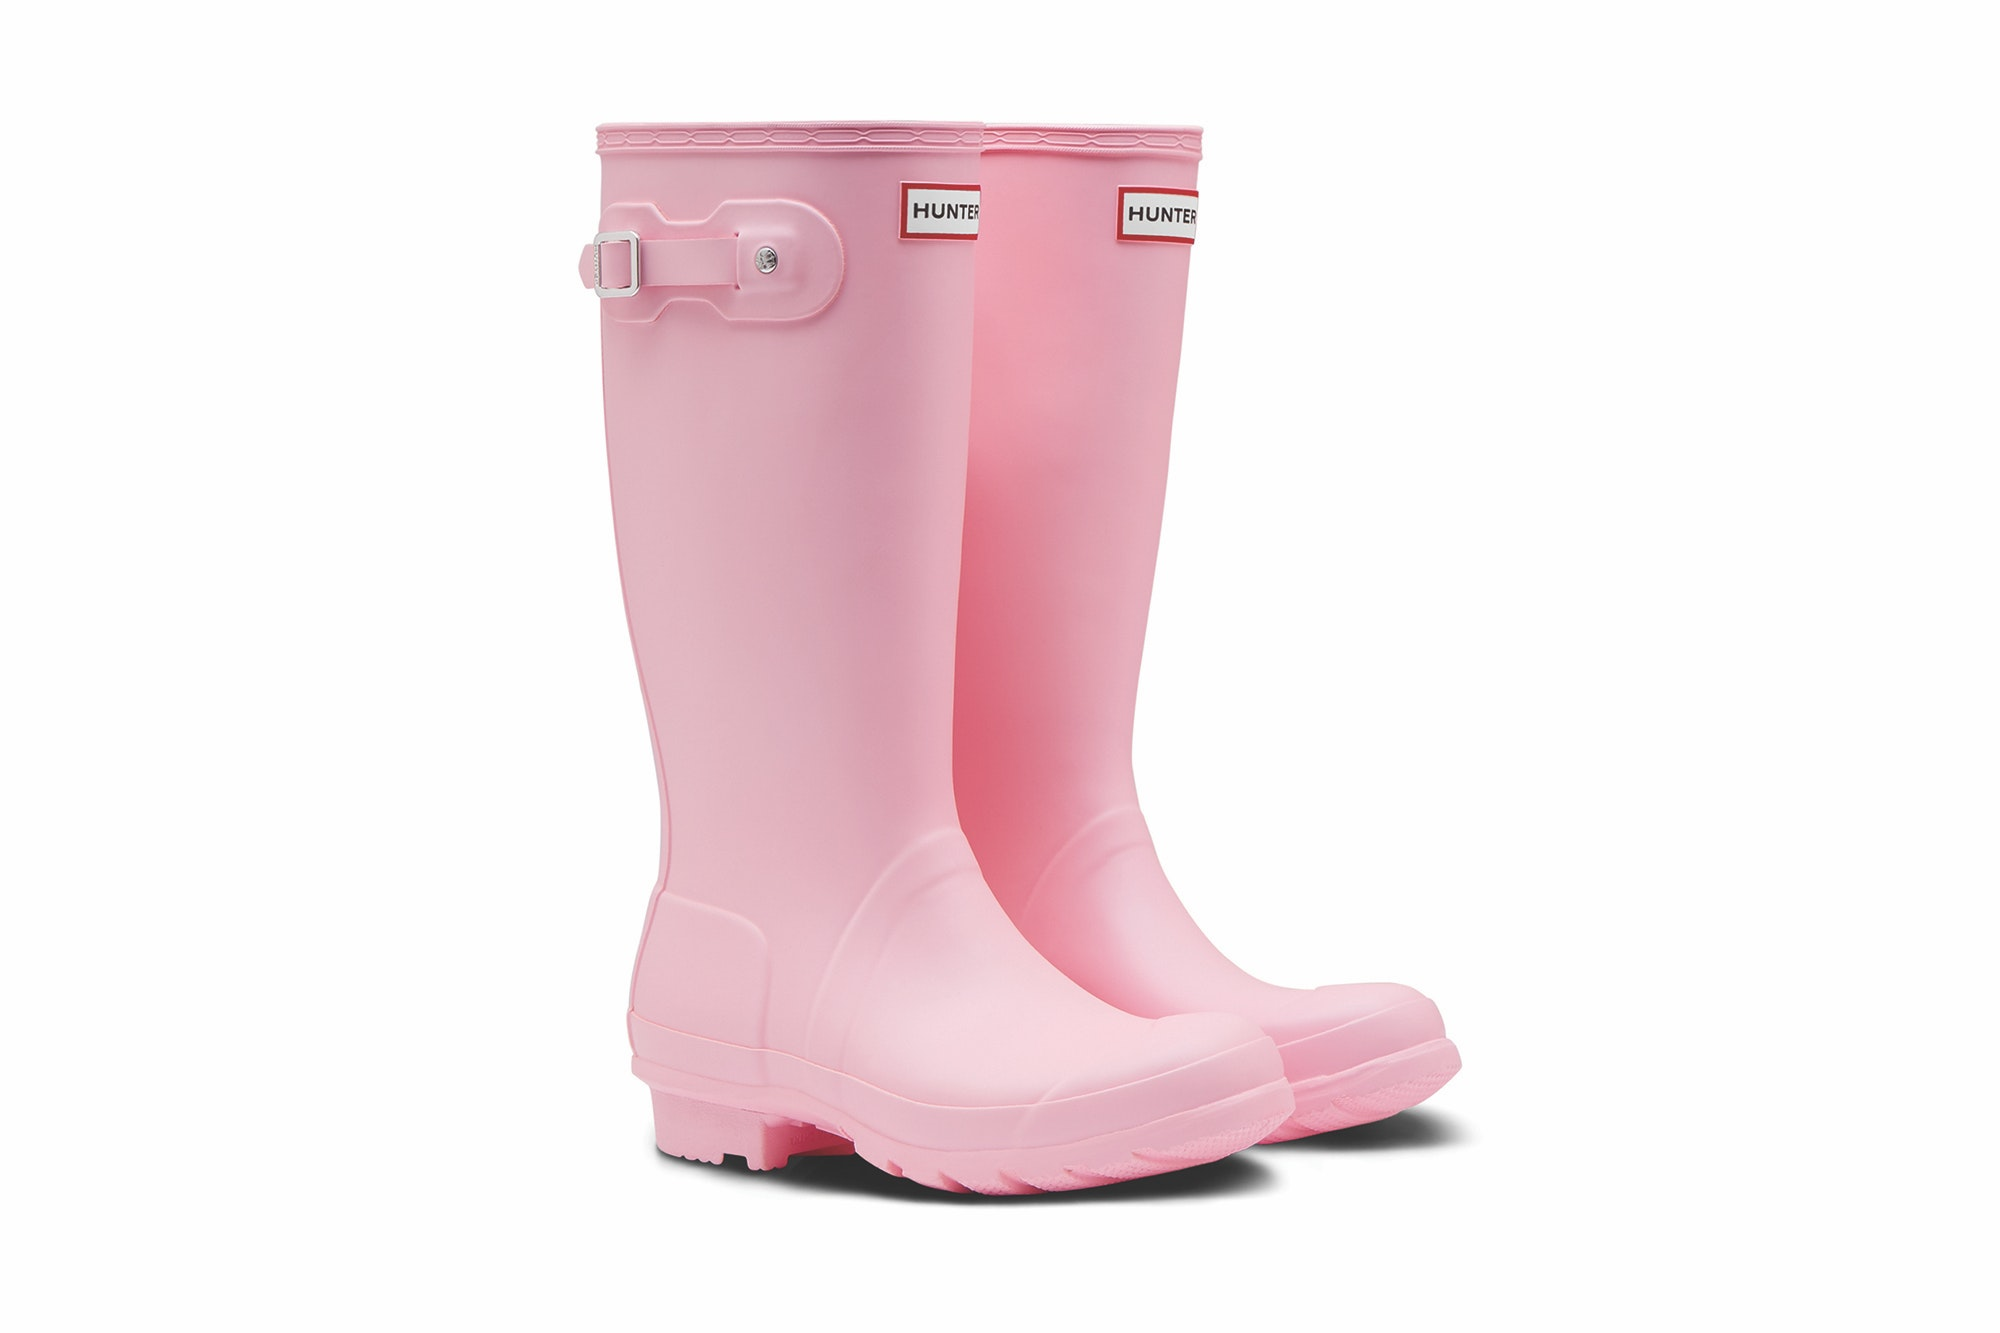 They're not merely pink, they're Langham Pink, aka Pantone color 706.